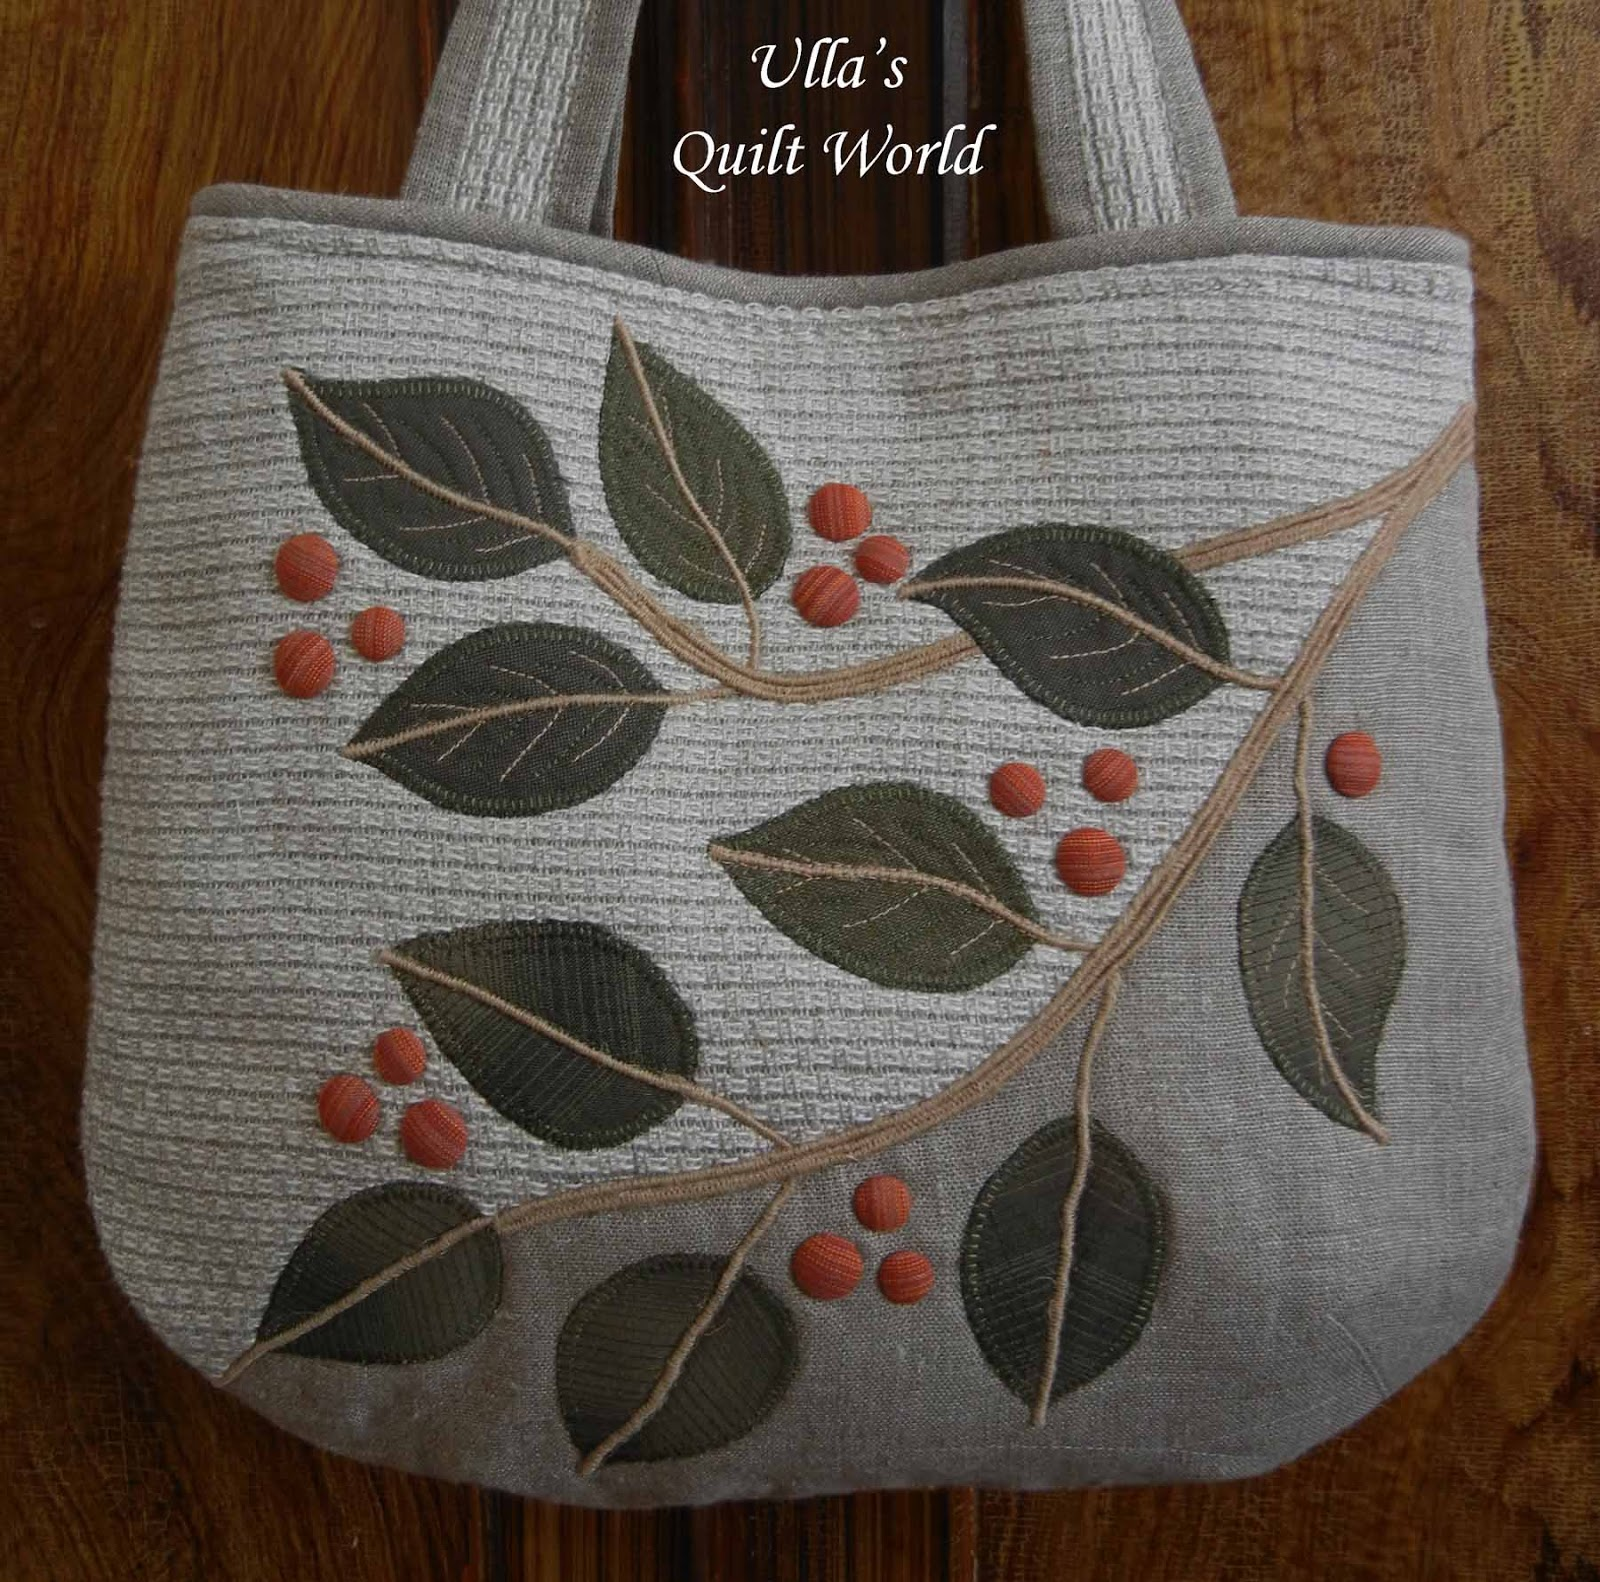 Quilting Patterns For Bags : Ulla s Quilt World: Quilt bag, leafs + PATTERN